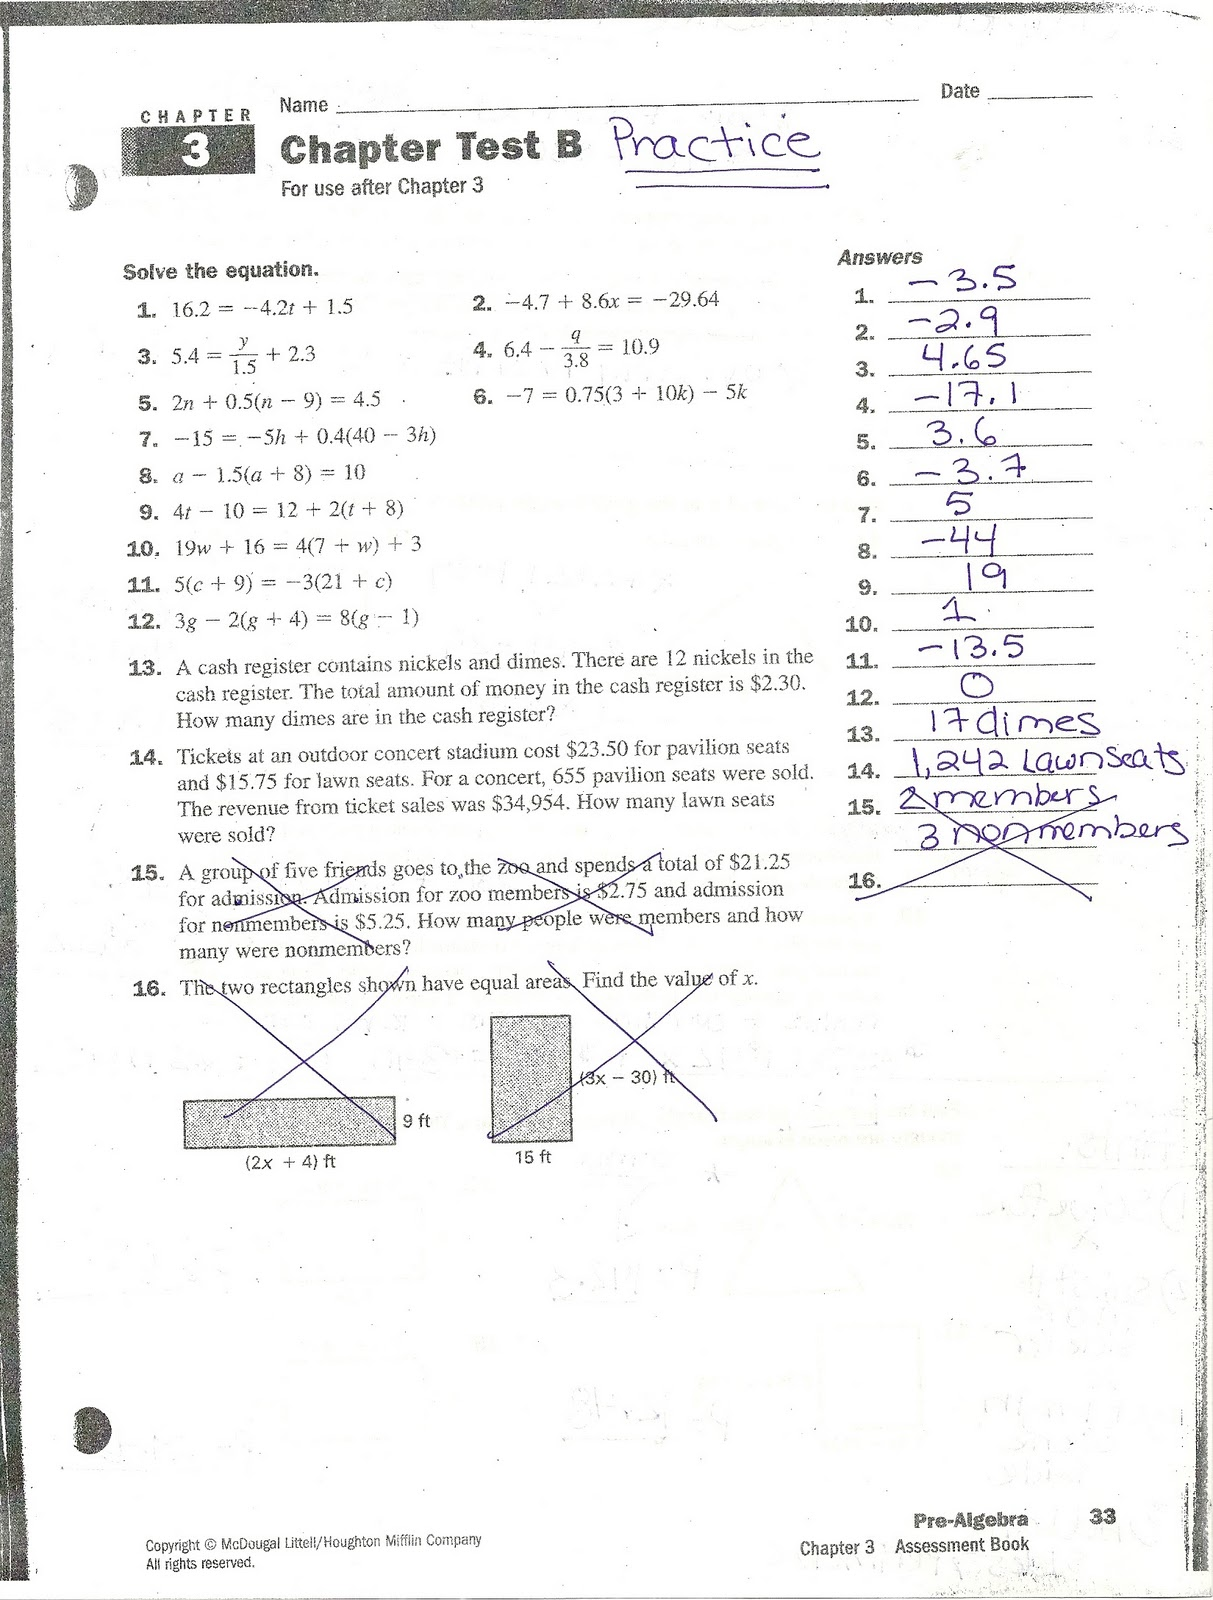 Worksheets Holt Mcdougal Algebra 2 Worksheet Answers mrs whites math class chapter 3 practice problems answers answers